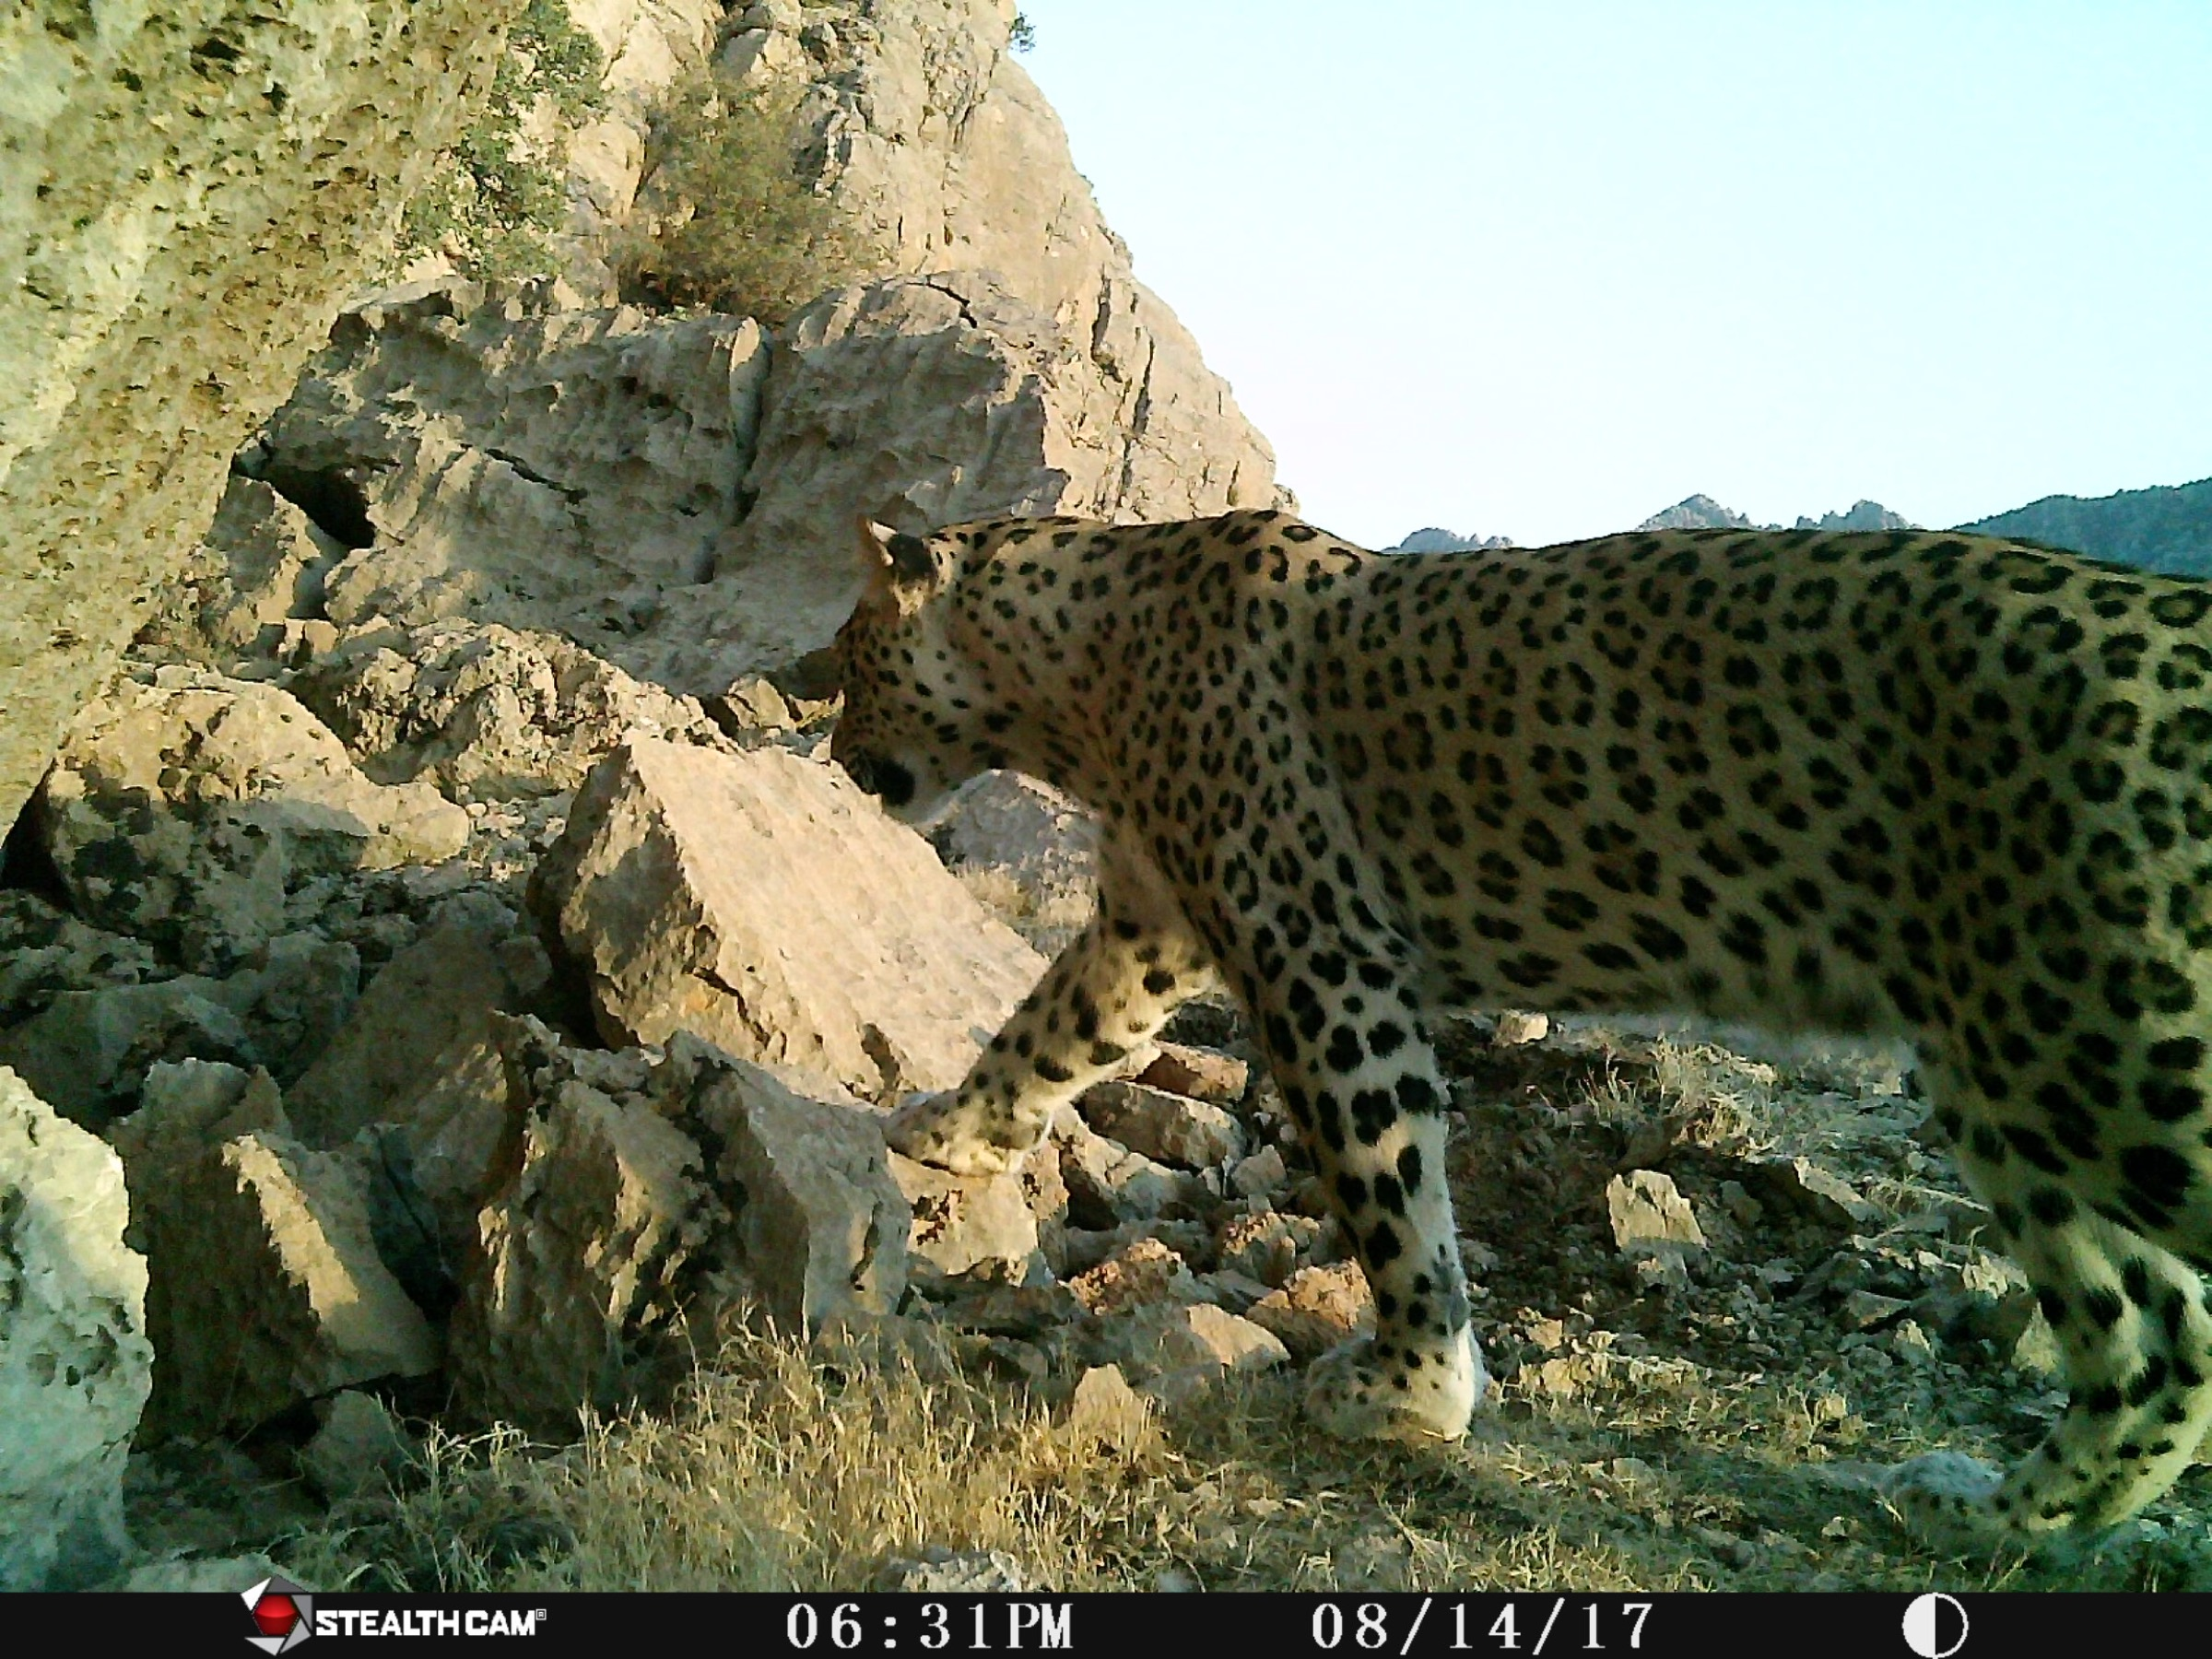 Camera traps set by Hana Raza, Korsh Ararat, and others at Nature Iraq have captured multiple sightings of three male Persian leopards in Iraq's Qara Dagh district. Raza estimates that there may be as many as 10 leopards in the area. Photograph ©Nature Iraq/German Consulate General/Goldman Environmental Foundation, 2017